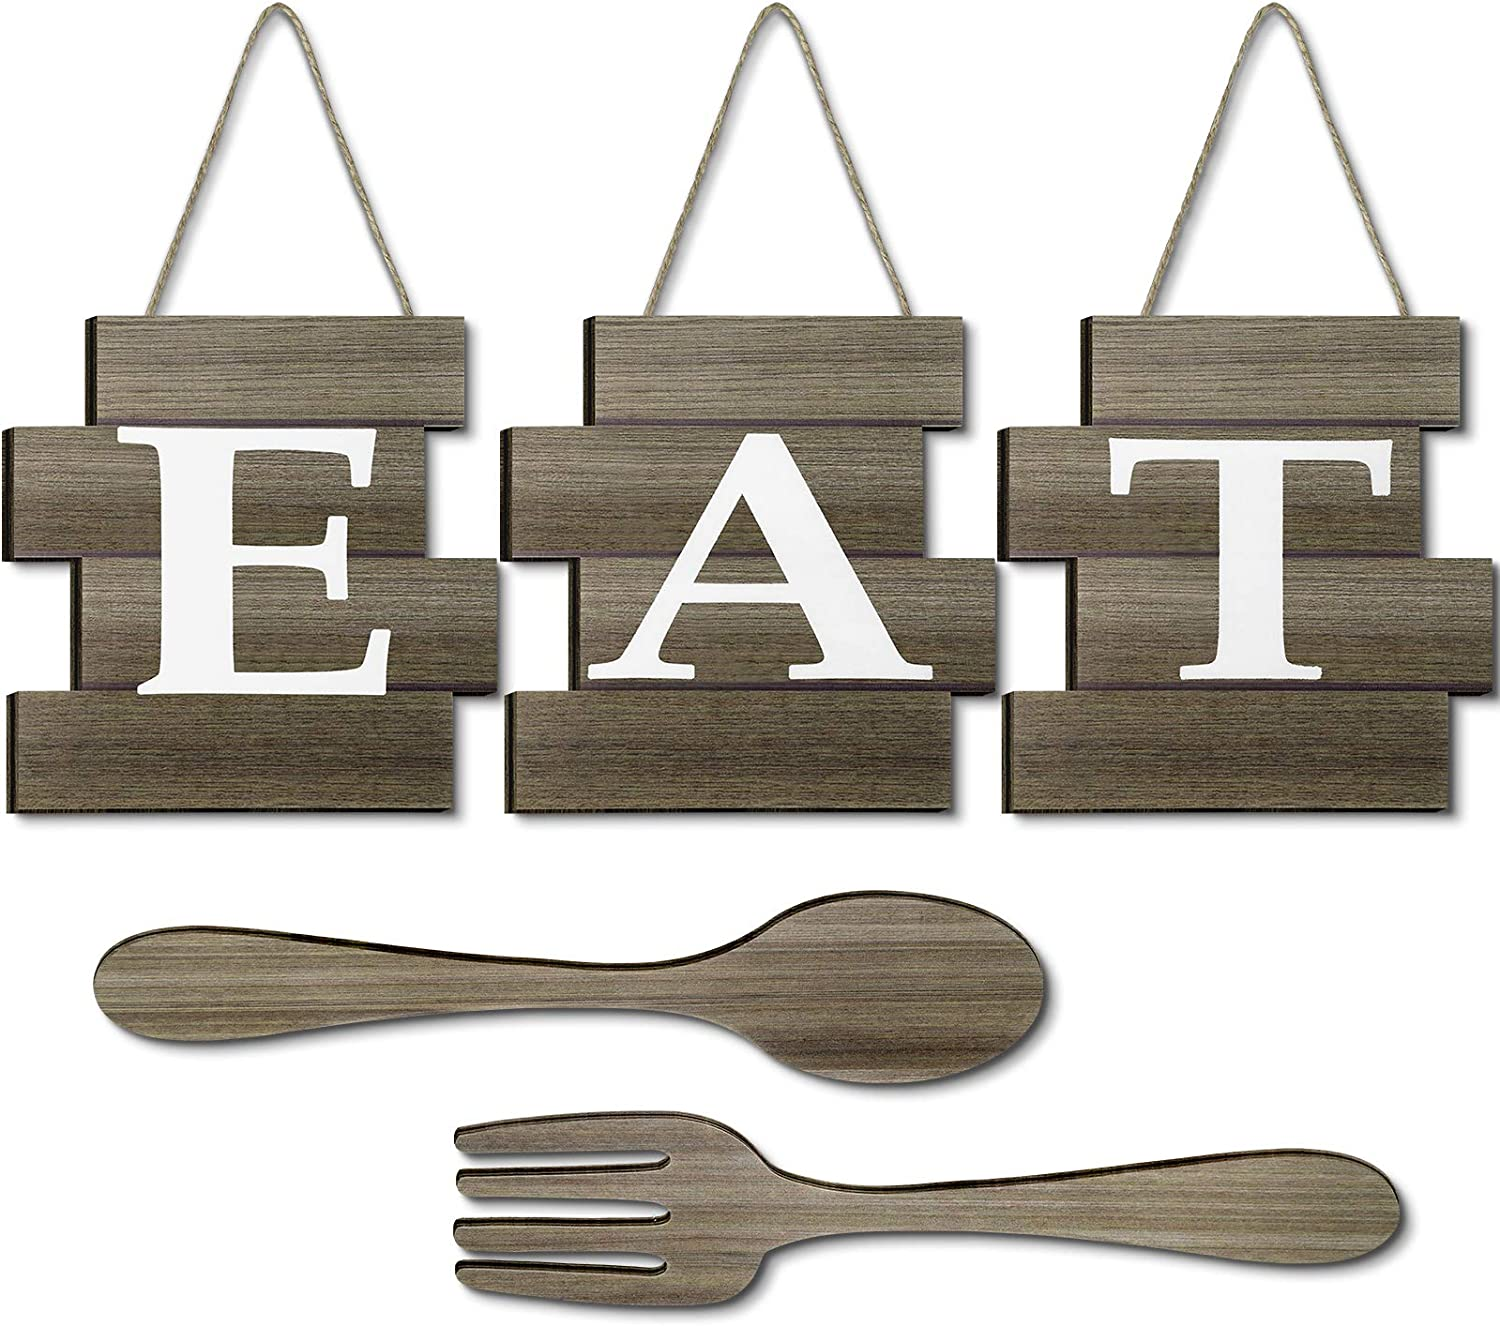 Yookeer Set of 5 Pieces Eat Sign Wall Decor, Rustic Farmhouse Spoon Fork Wooden Sign Decoration Country Wall Art Decorative Hanging Wooden Letters for Kitchen Home (Brown)